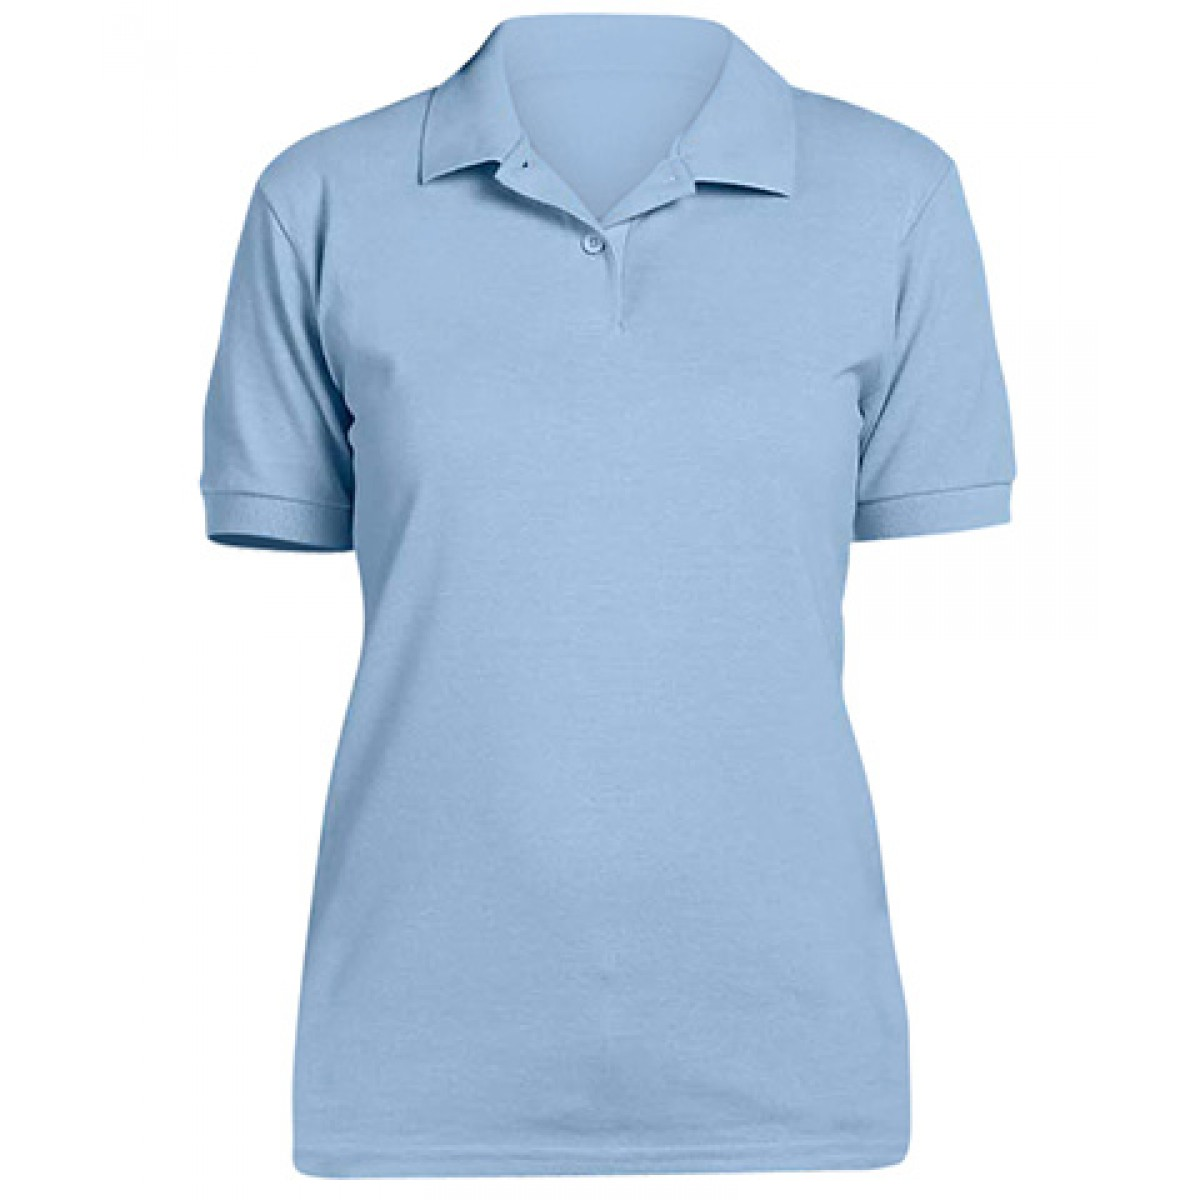 Ladies' 6.5 oz. Piqué Sport Shirt-Blue-2XL